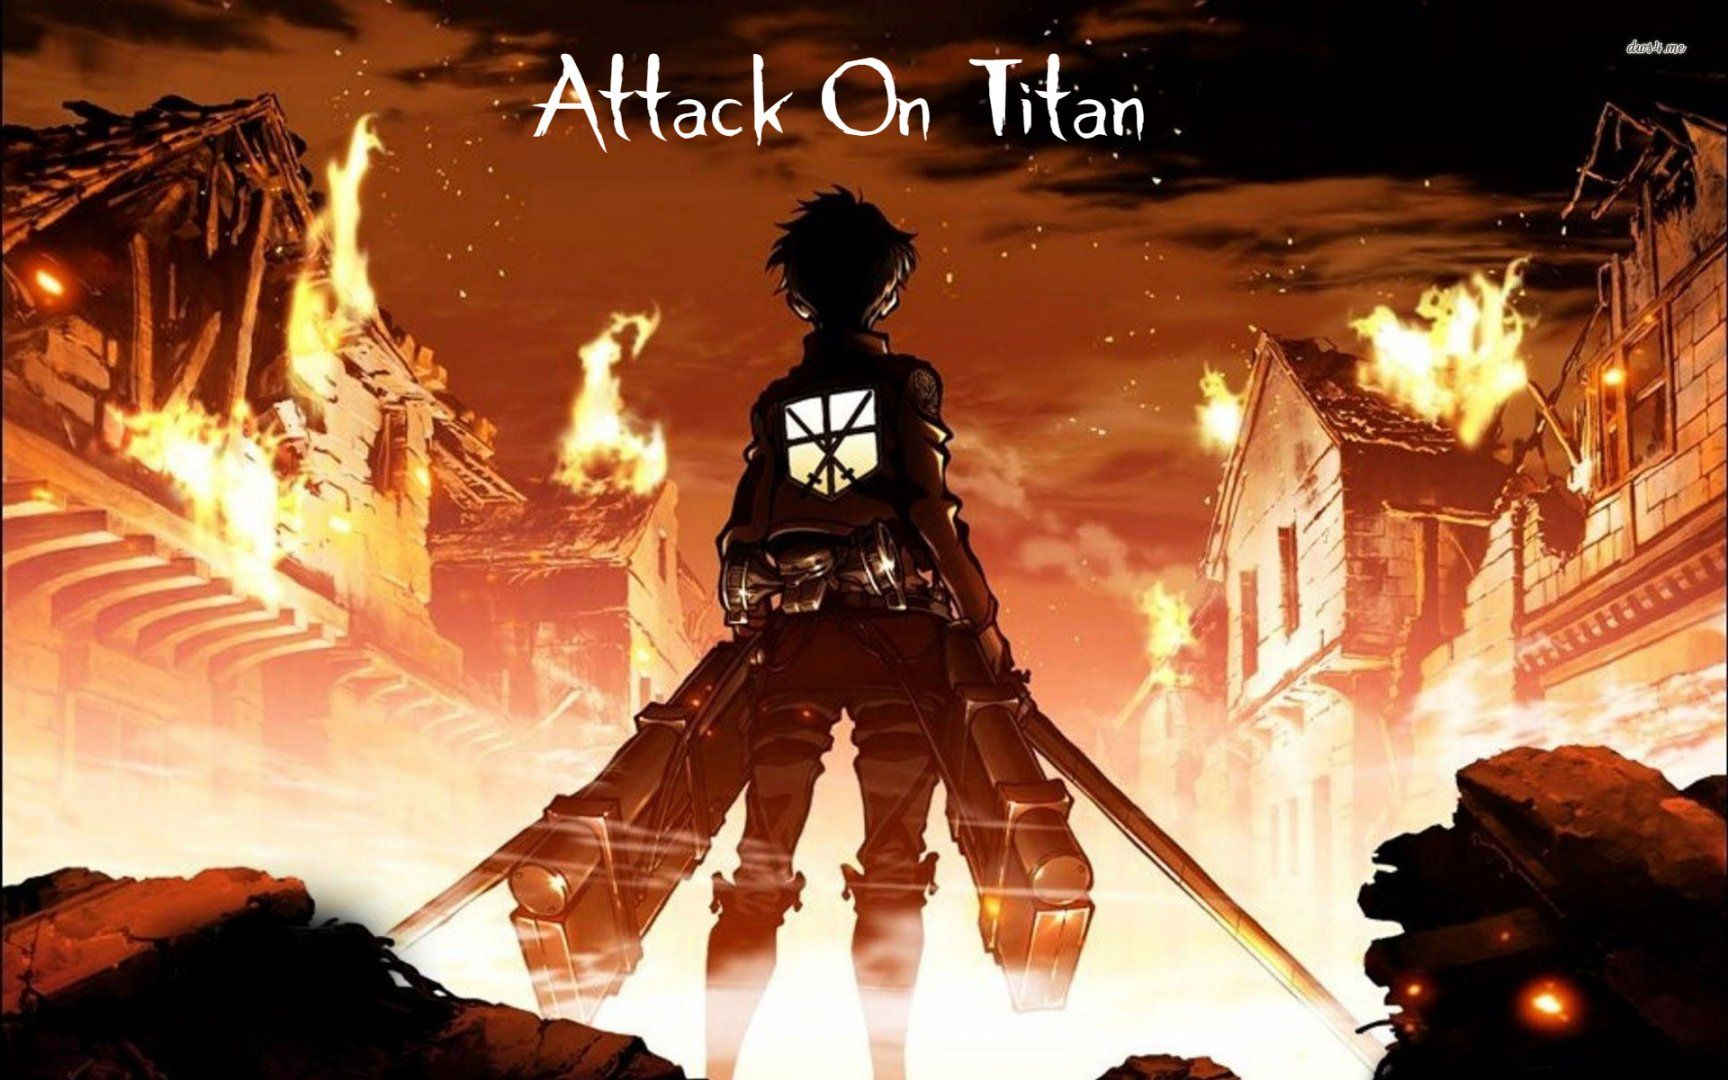 wp8035847-attack-on-titan-poster-wallpapers.jpg